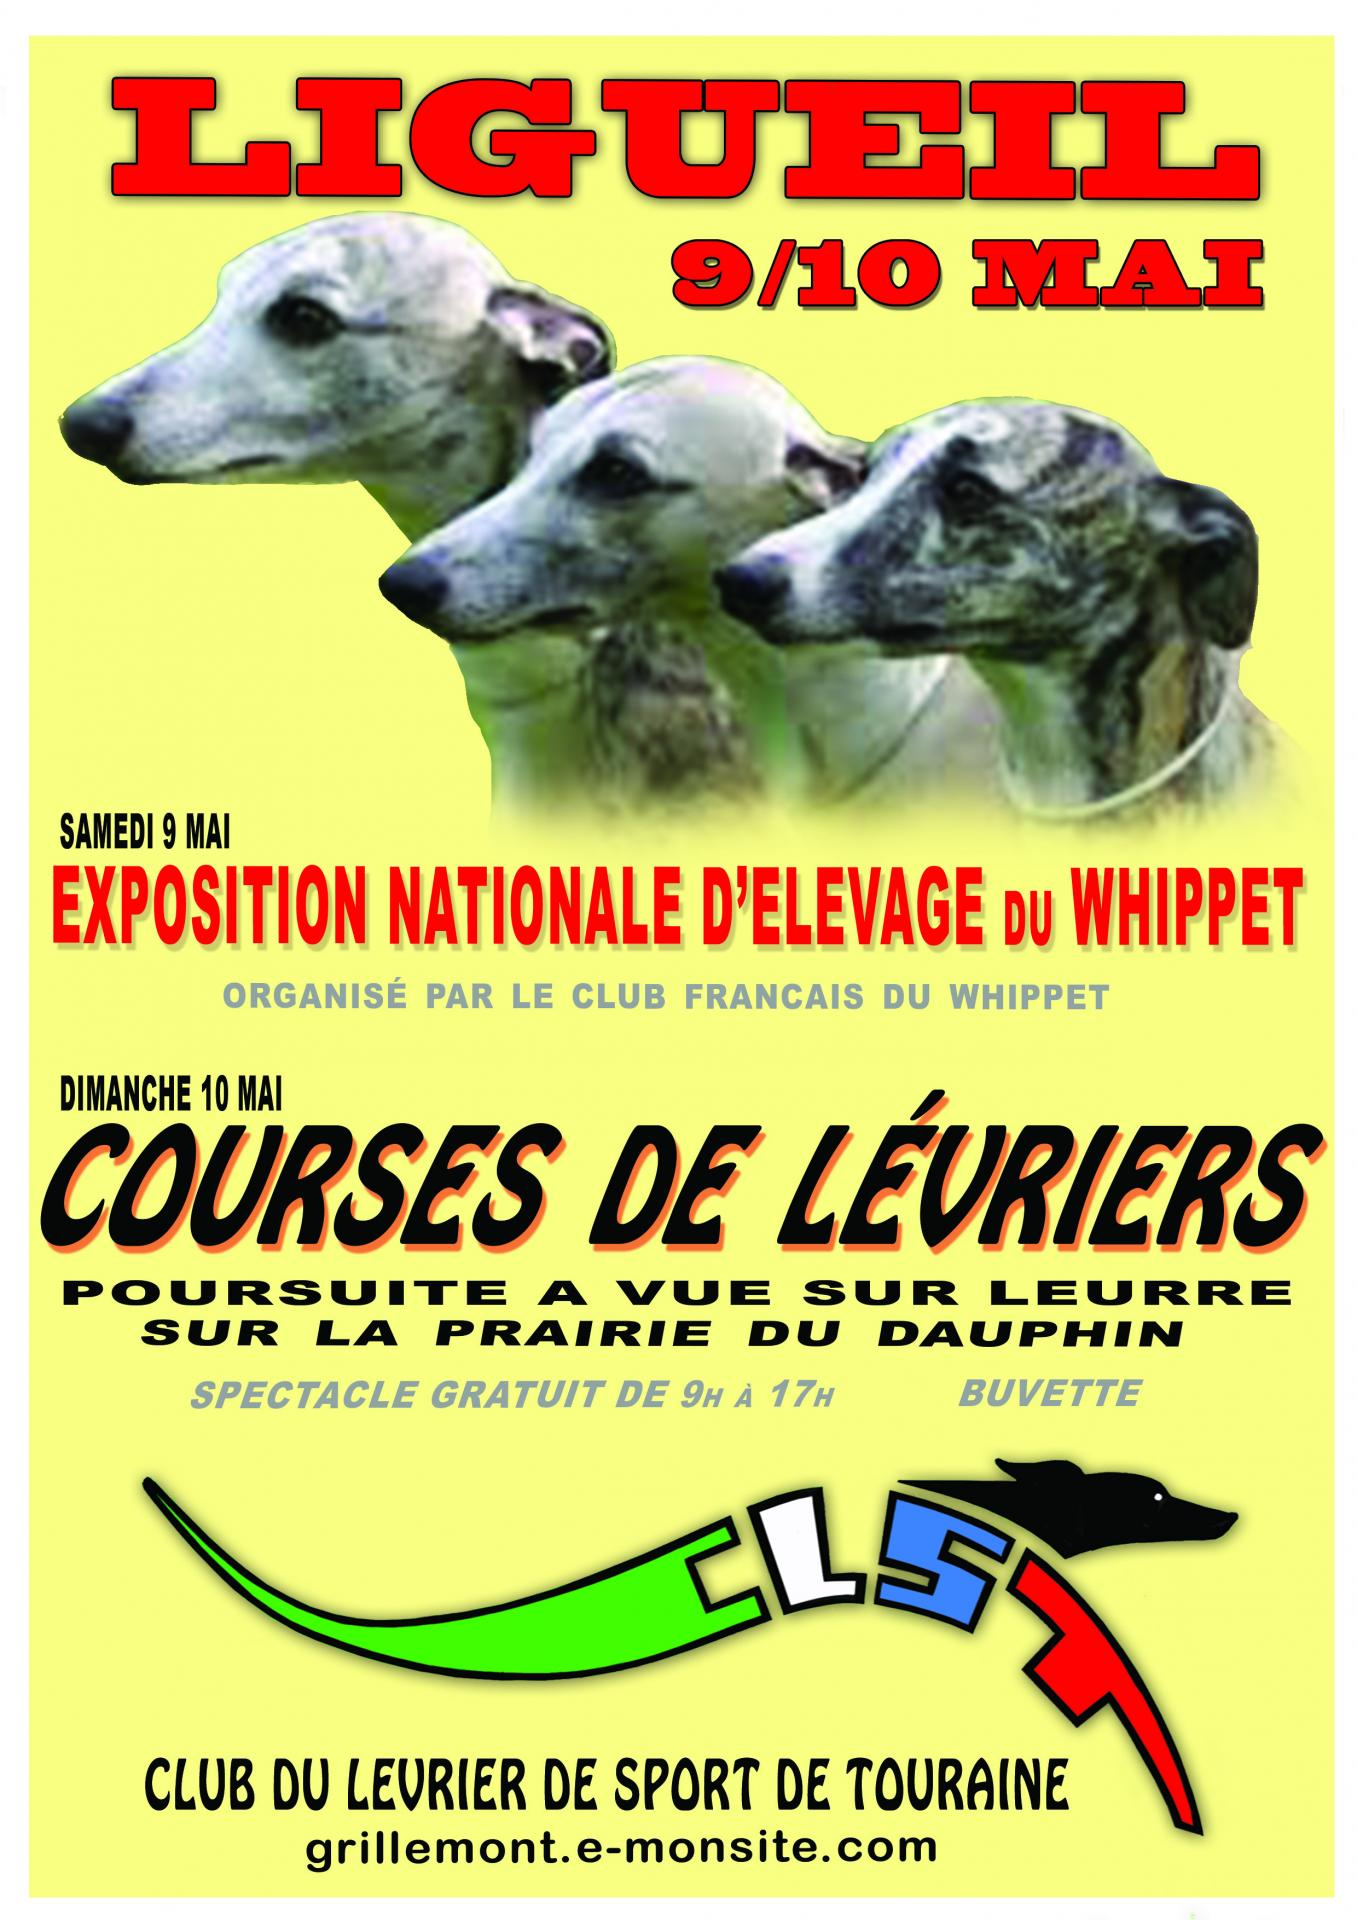 Nationnale whippet du 24 02